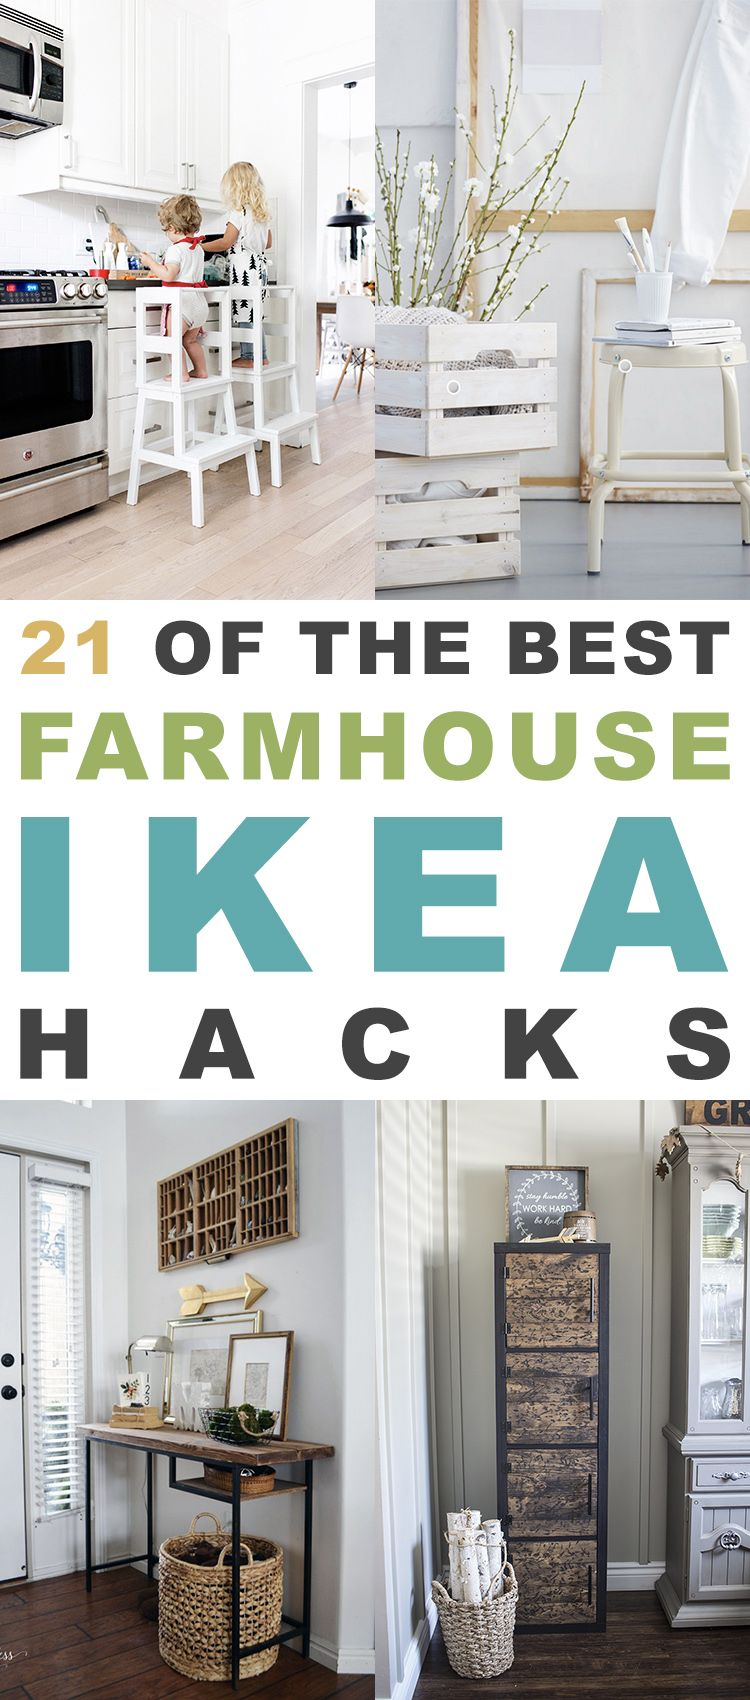 21 of The BEST Farmhouse IKEA Hacks - The Cottage Market